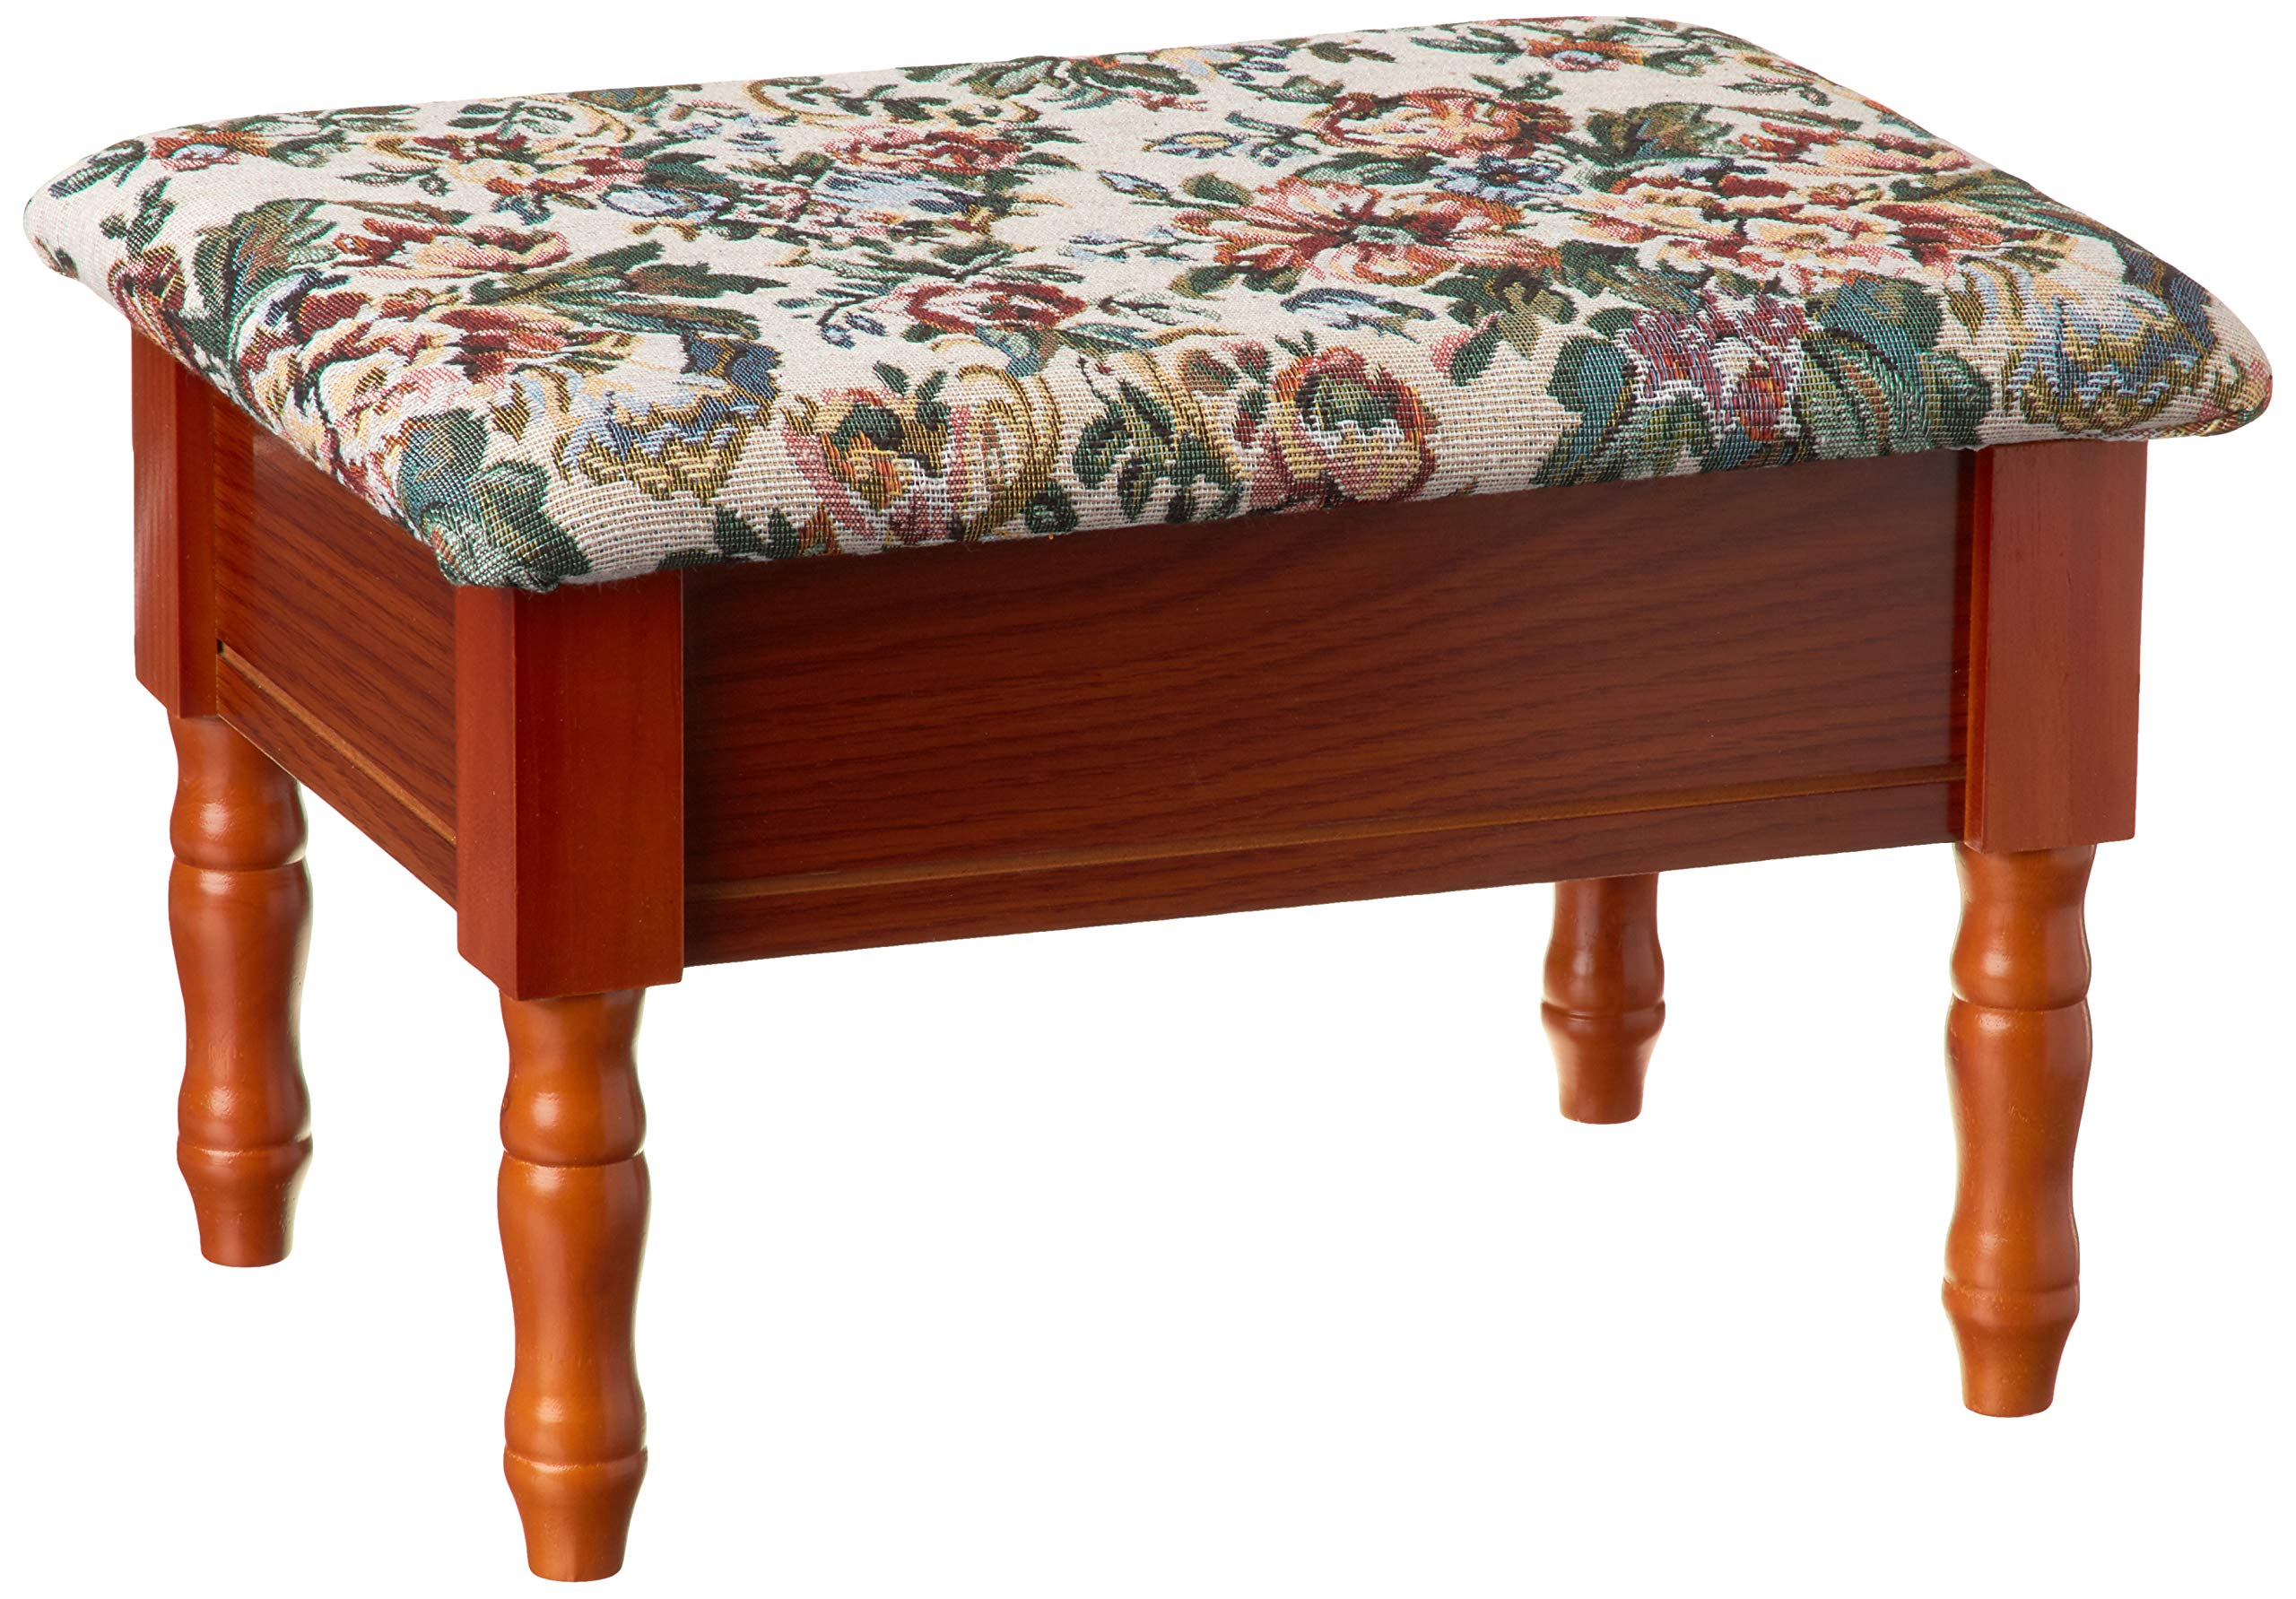 Frenchi Furniture Queen Anne Style Footstool w/ Storage by Frenchi Home Furnishing